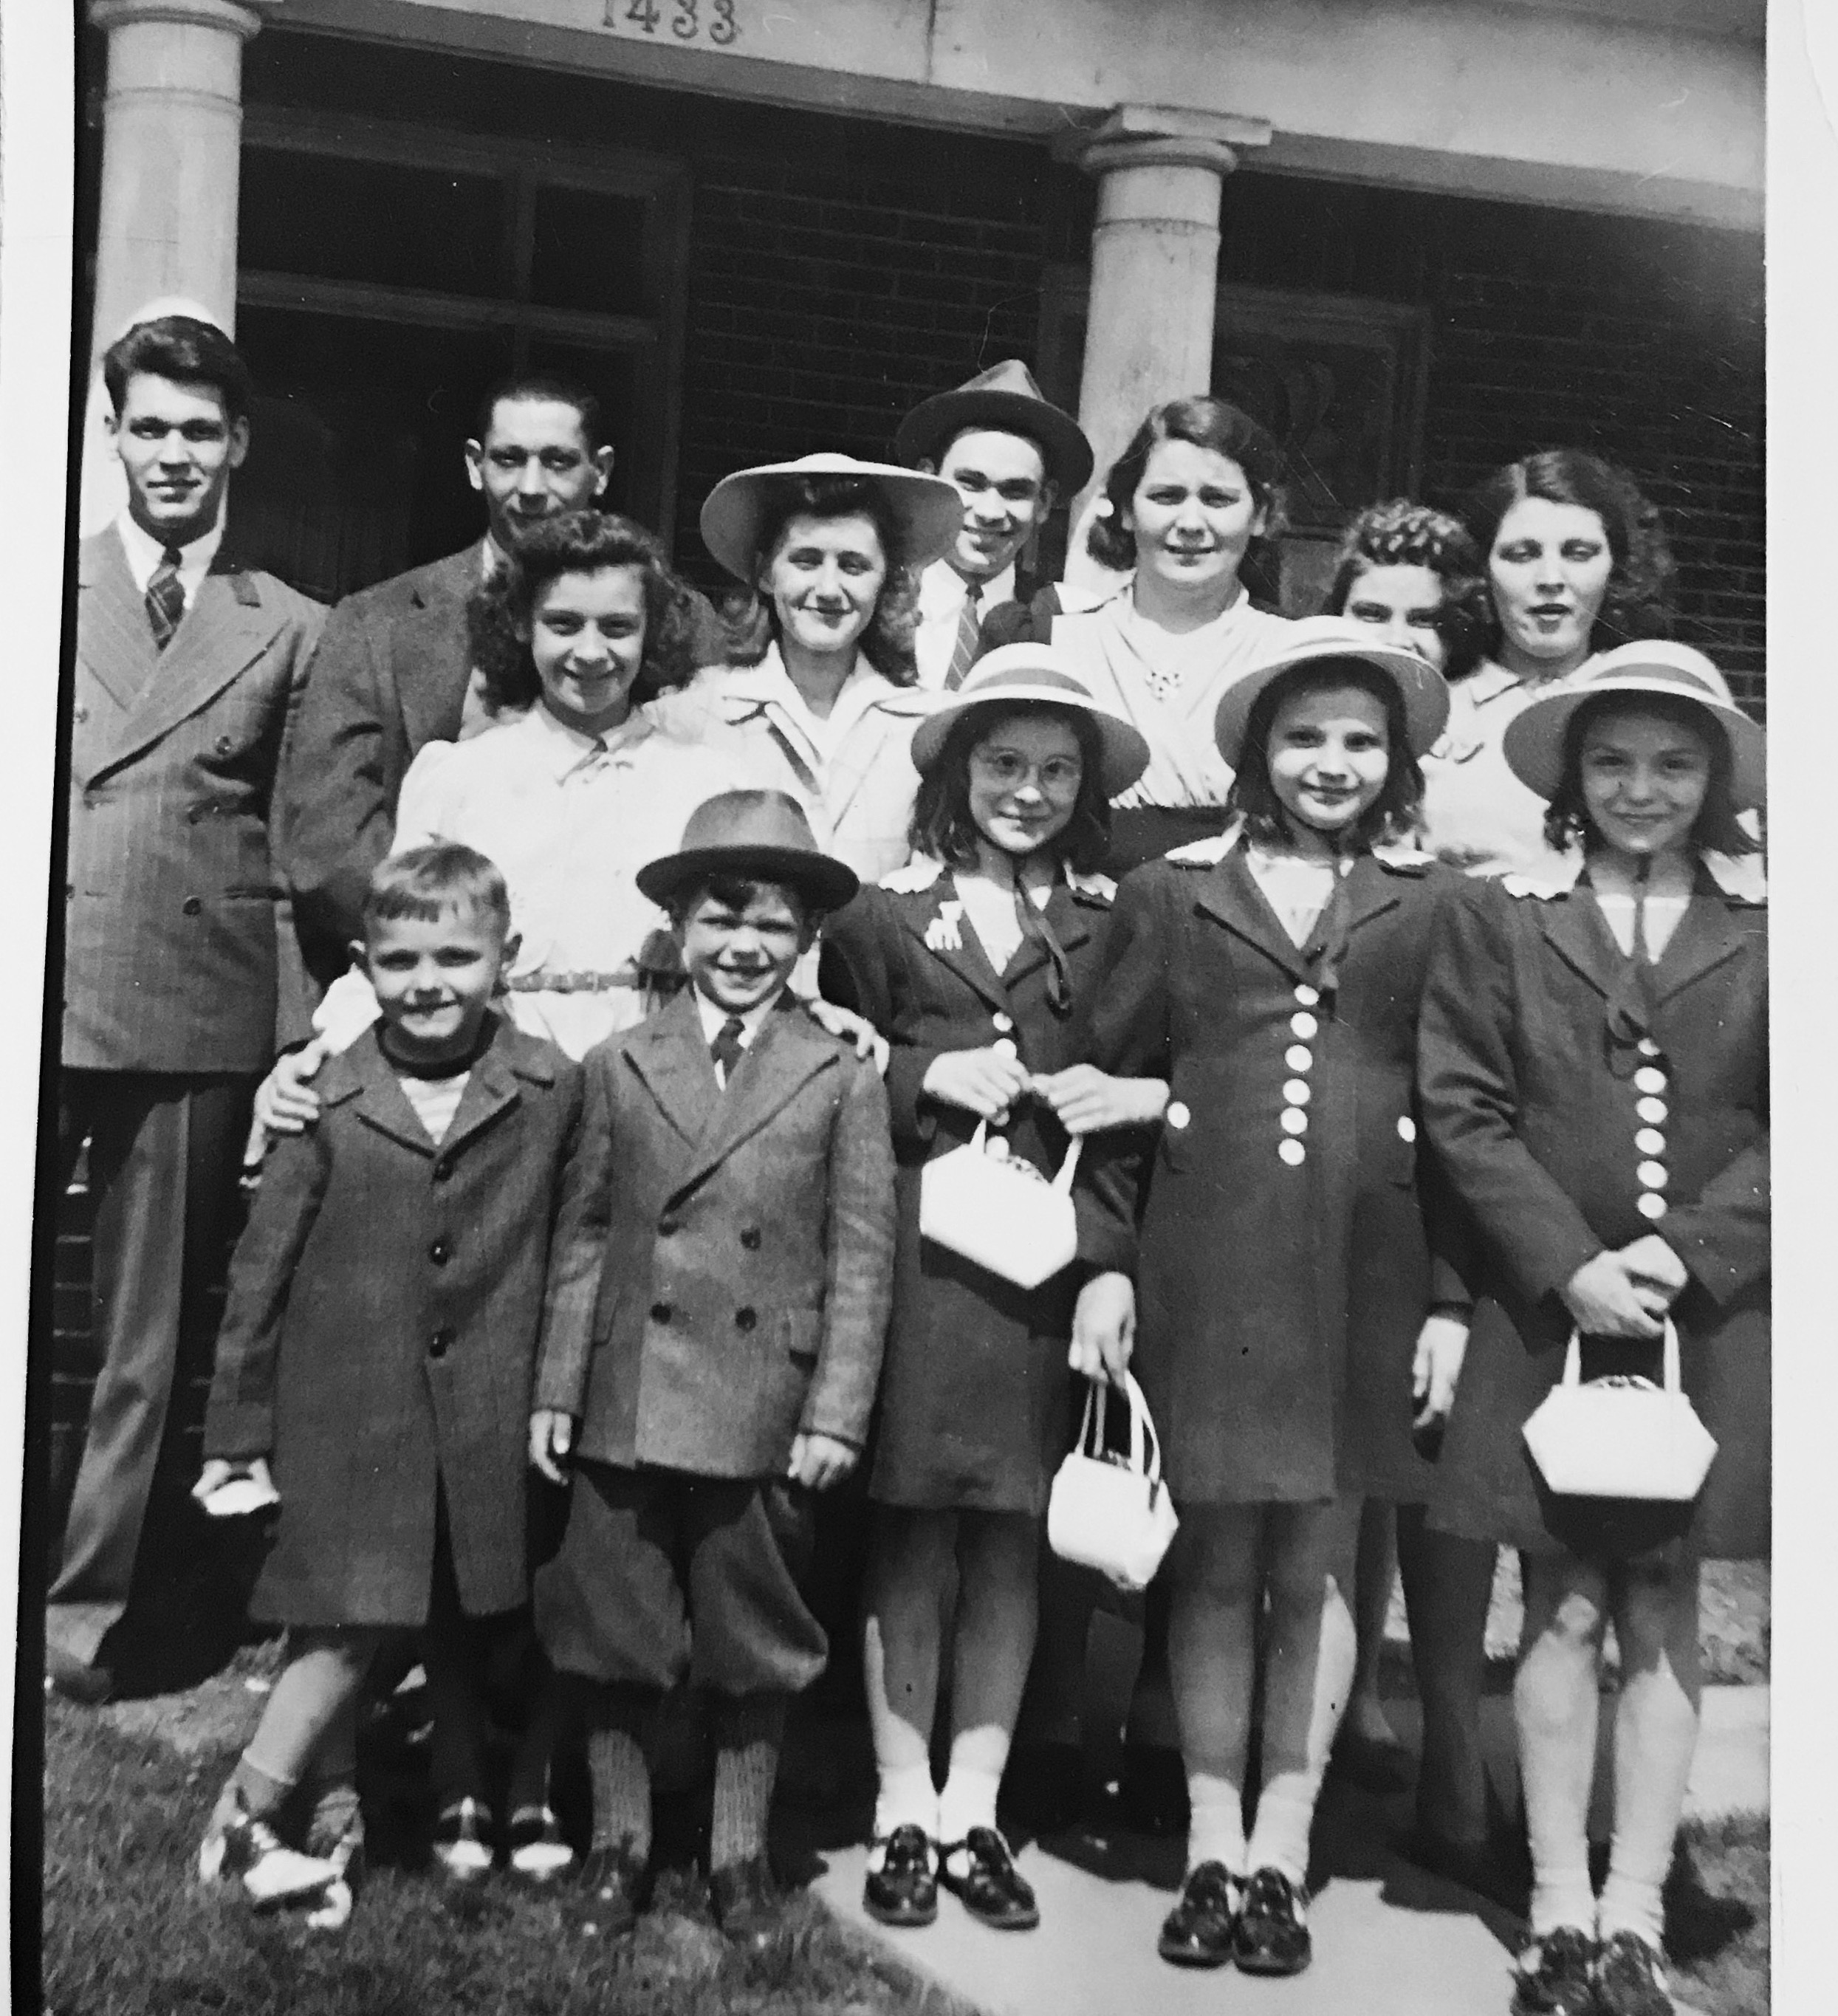 1st generation of Stankiewicz family on Easter Sunday in the 1940s